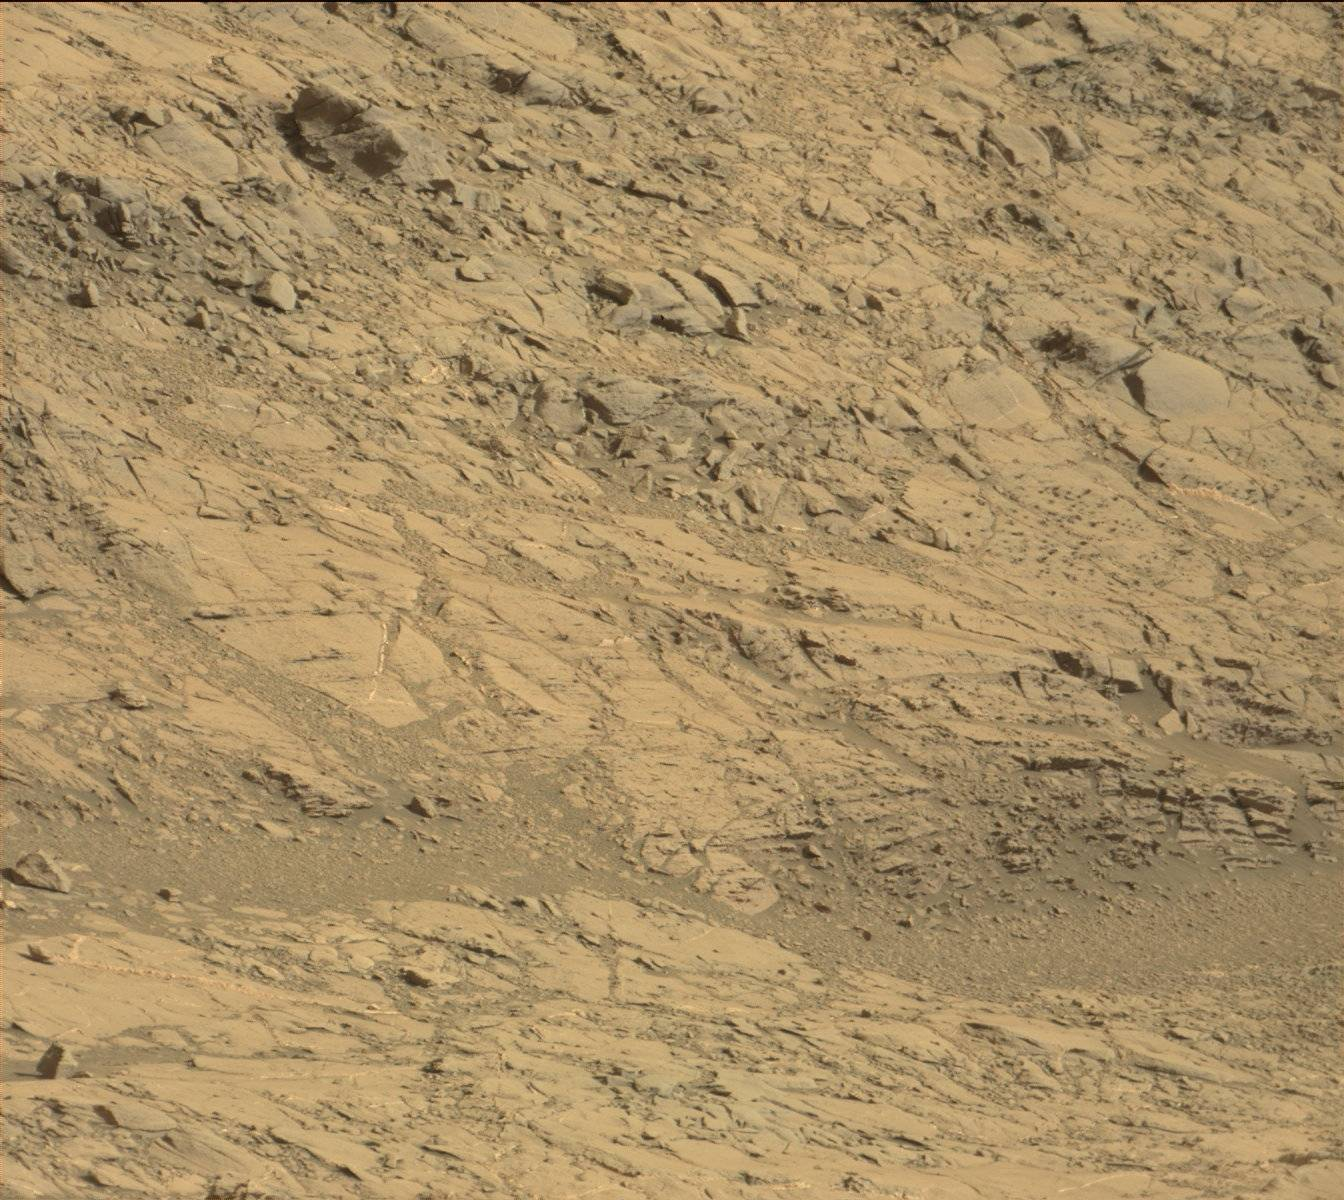 Nasa's Mars rover Curiosity acquired this image using its Mast Camera (Mastcam) on Sol 1160